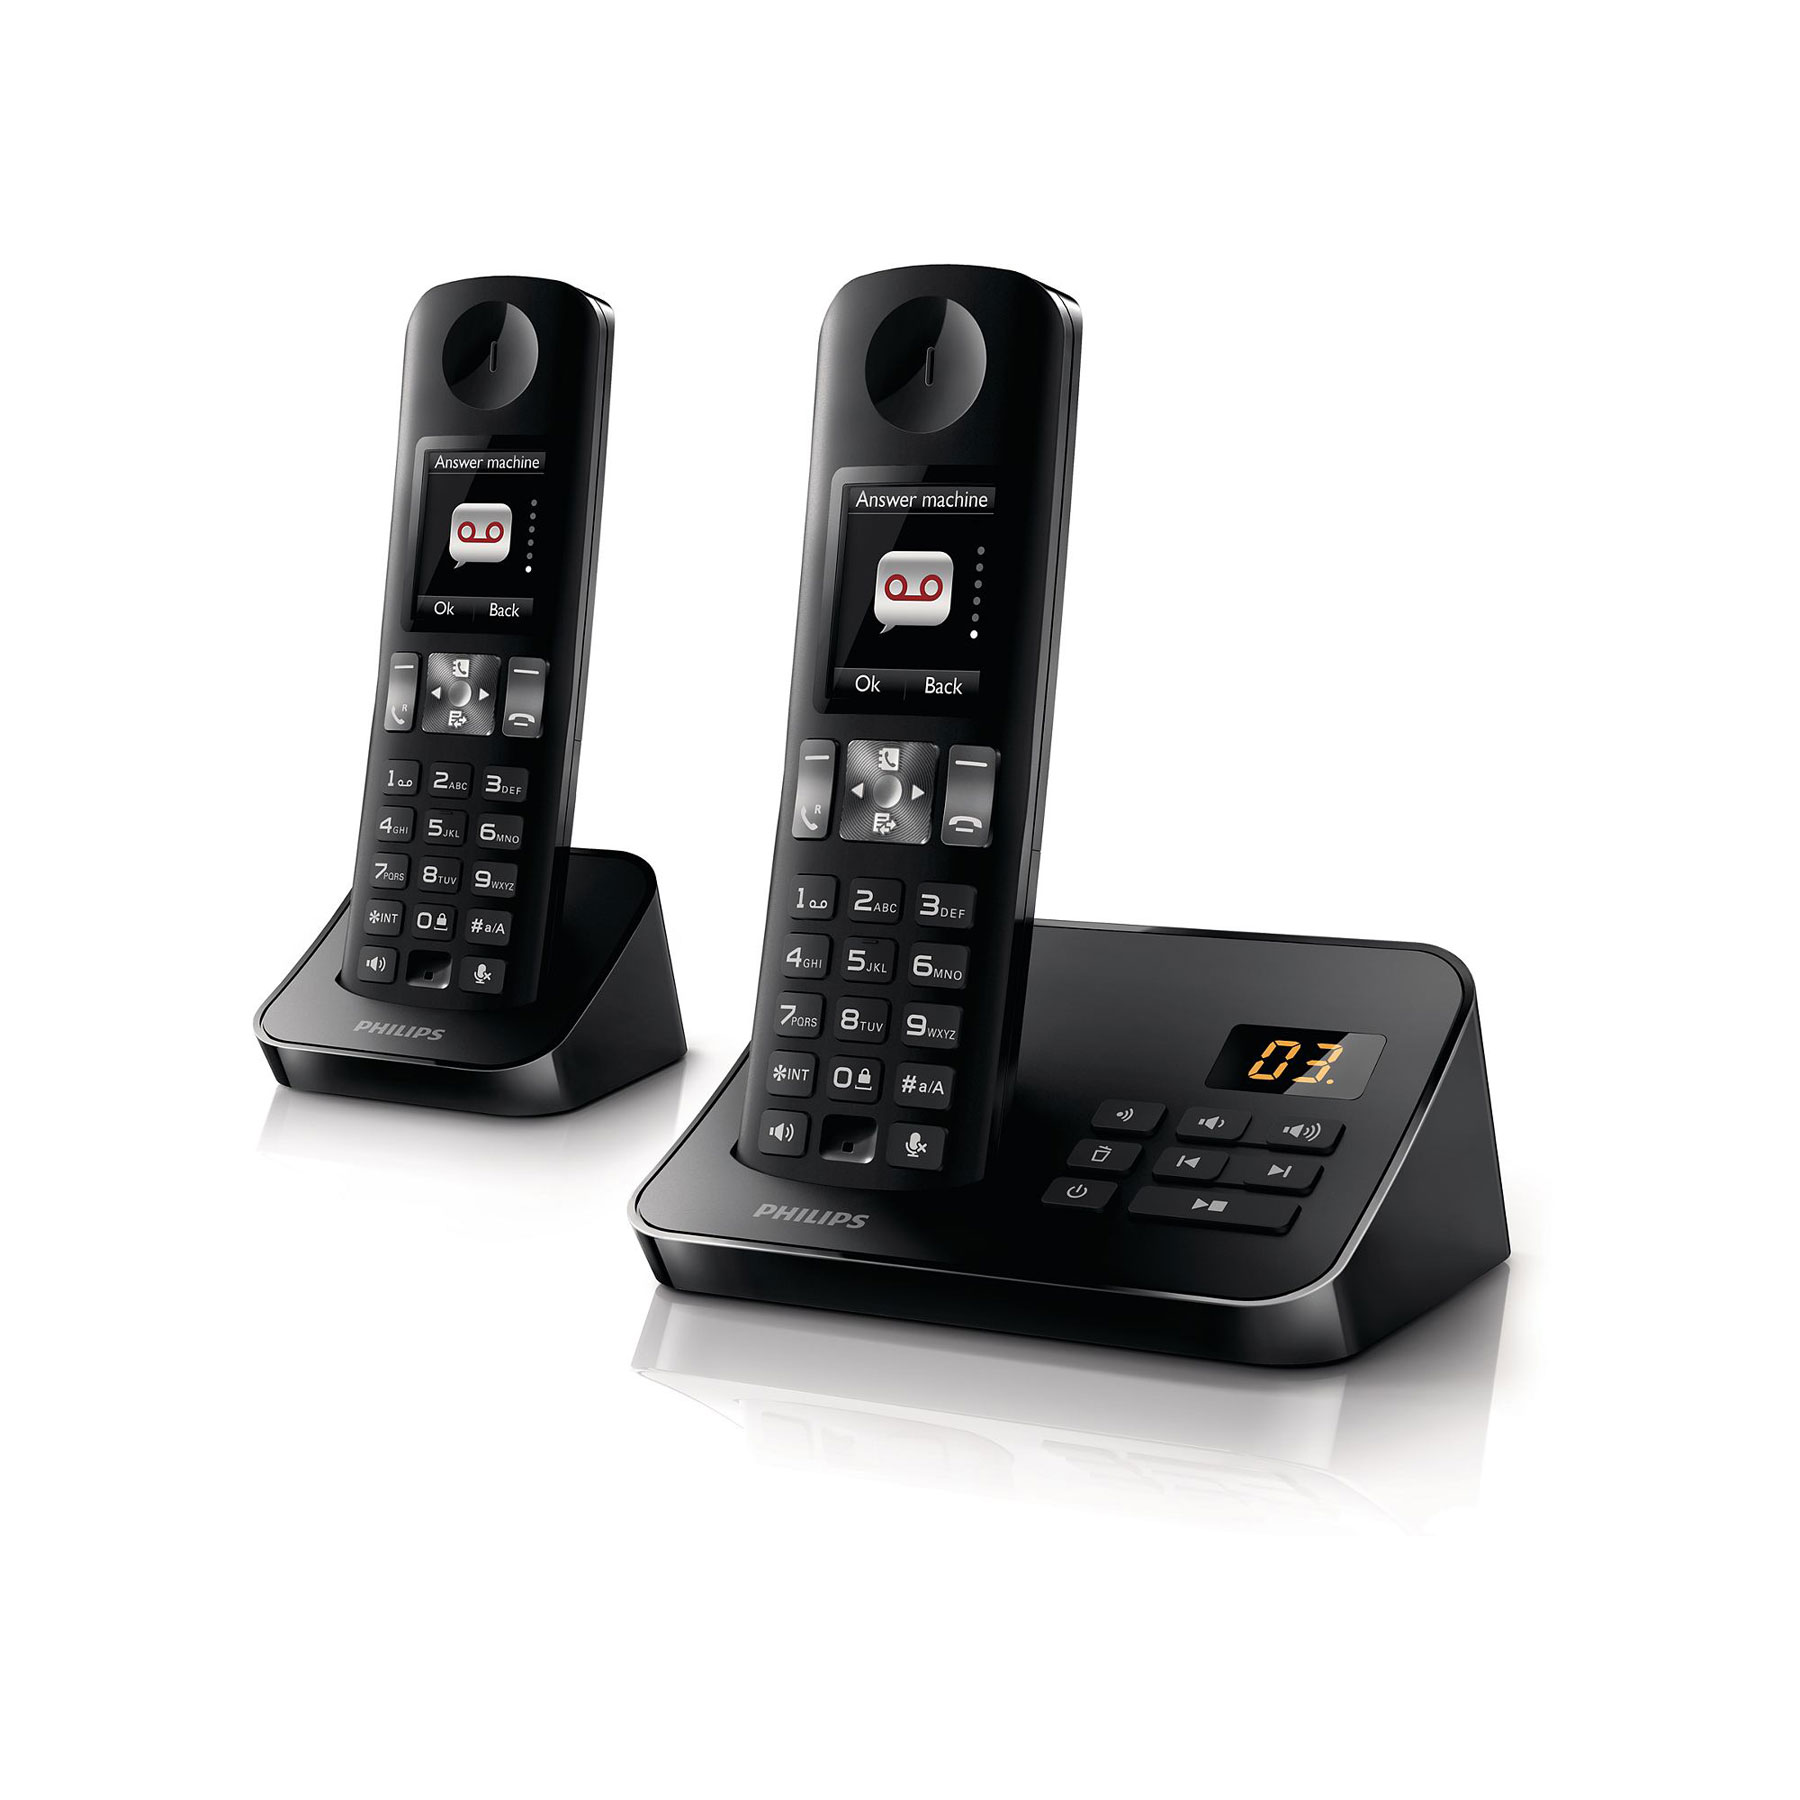 philips d6052 duo noir t l phone sans fil philips sur. Black Bedroom Furniture Sets. Home Design Ideas